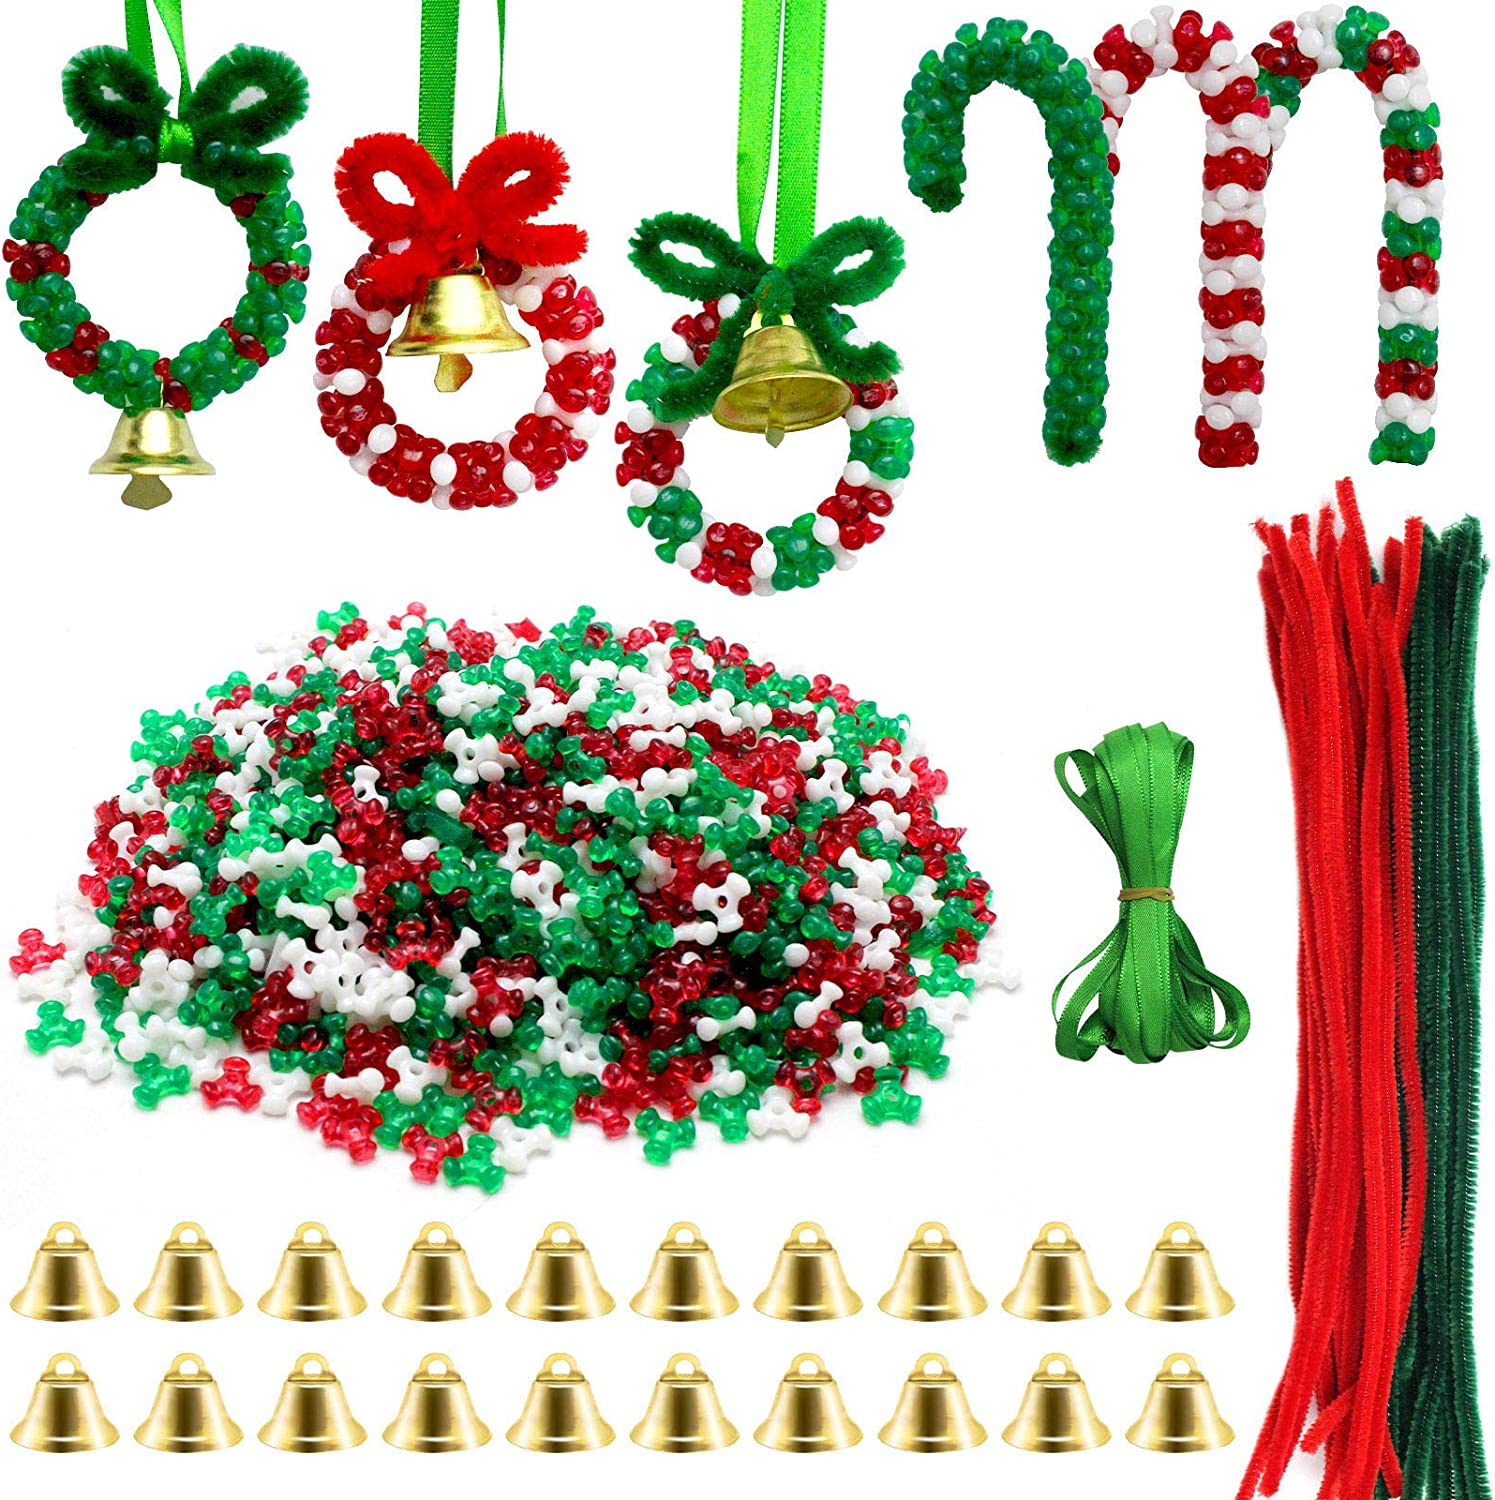 1570 PCS Christmas Beaded Ornament Kit Christmas Tri-Shaped Beads Plastic Tri Beads with Pipe Cleaners Xmas Party Craft Wreath Candy Cane for Christmas Tree Hanging